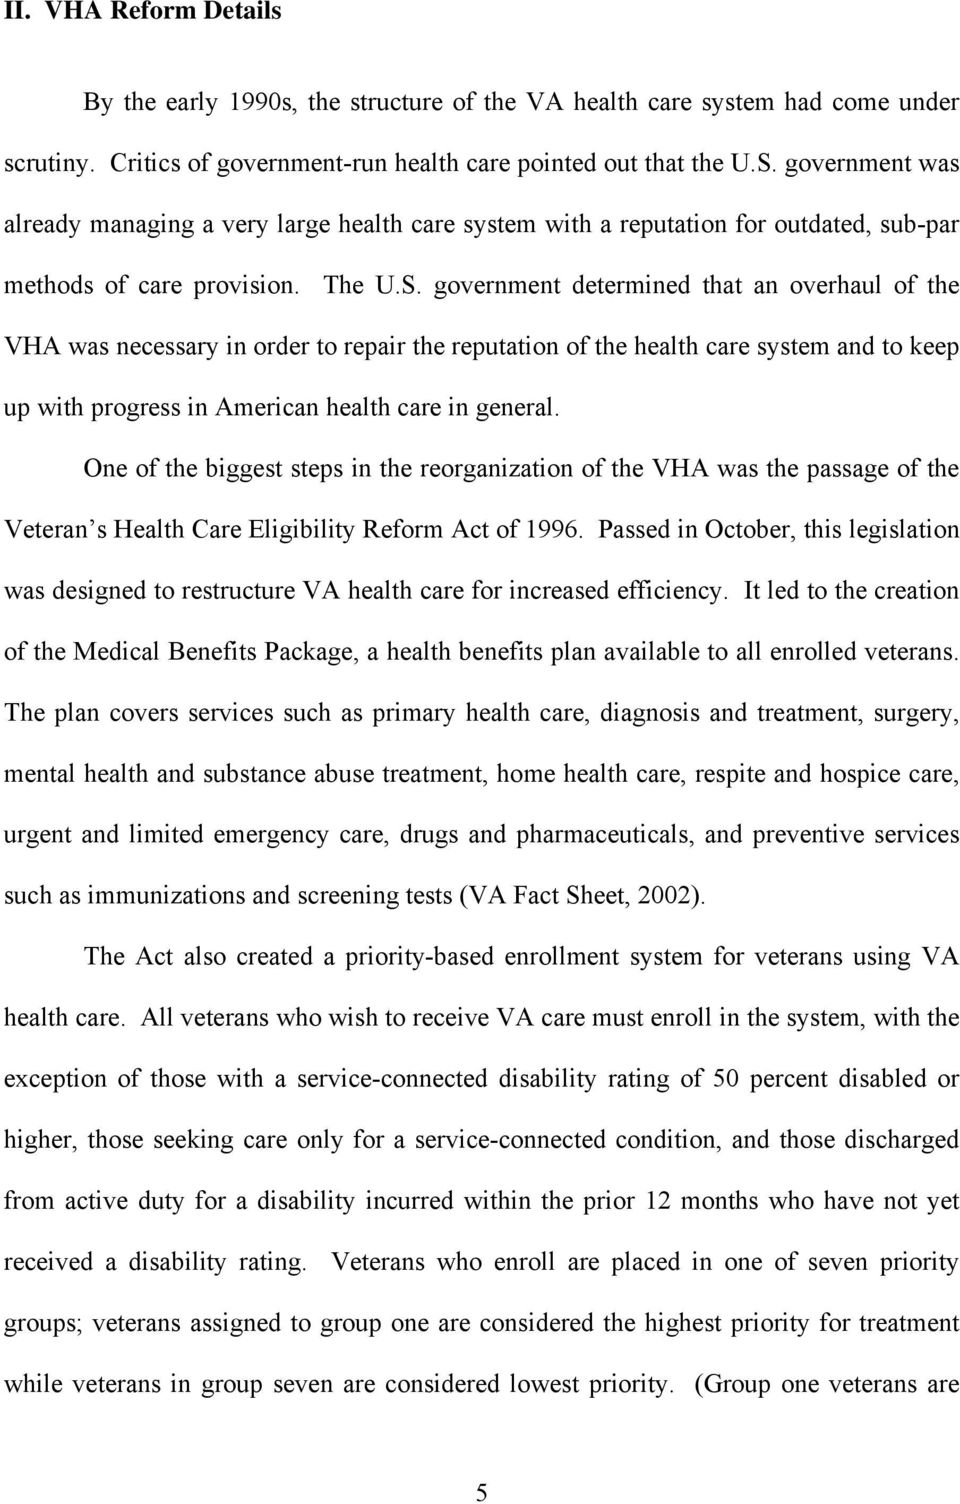 government determined that an overhaul of the VHA was necessary in order to repair the reputation of the health care system and to keep up with progress in American health care in general.